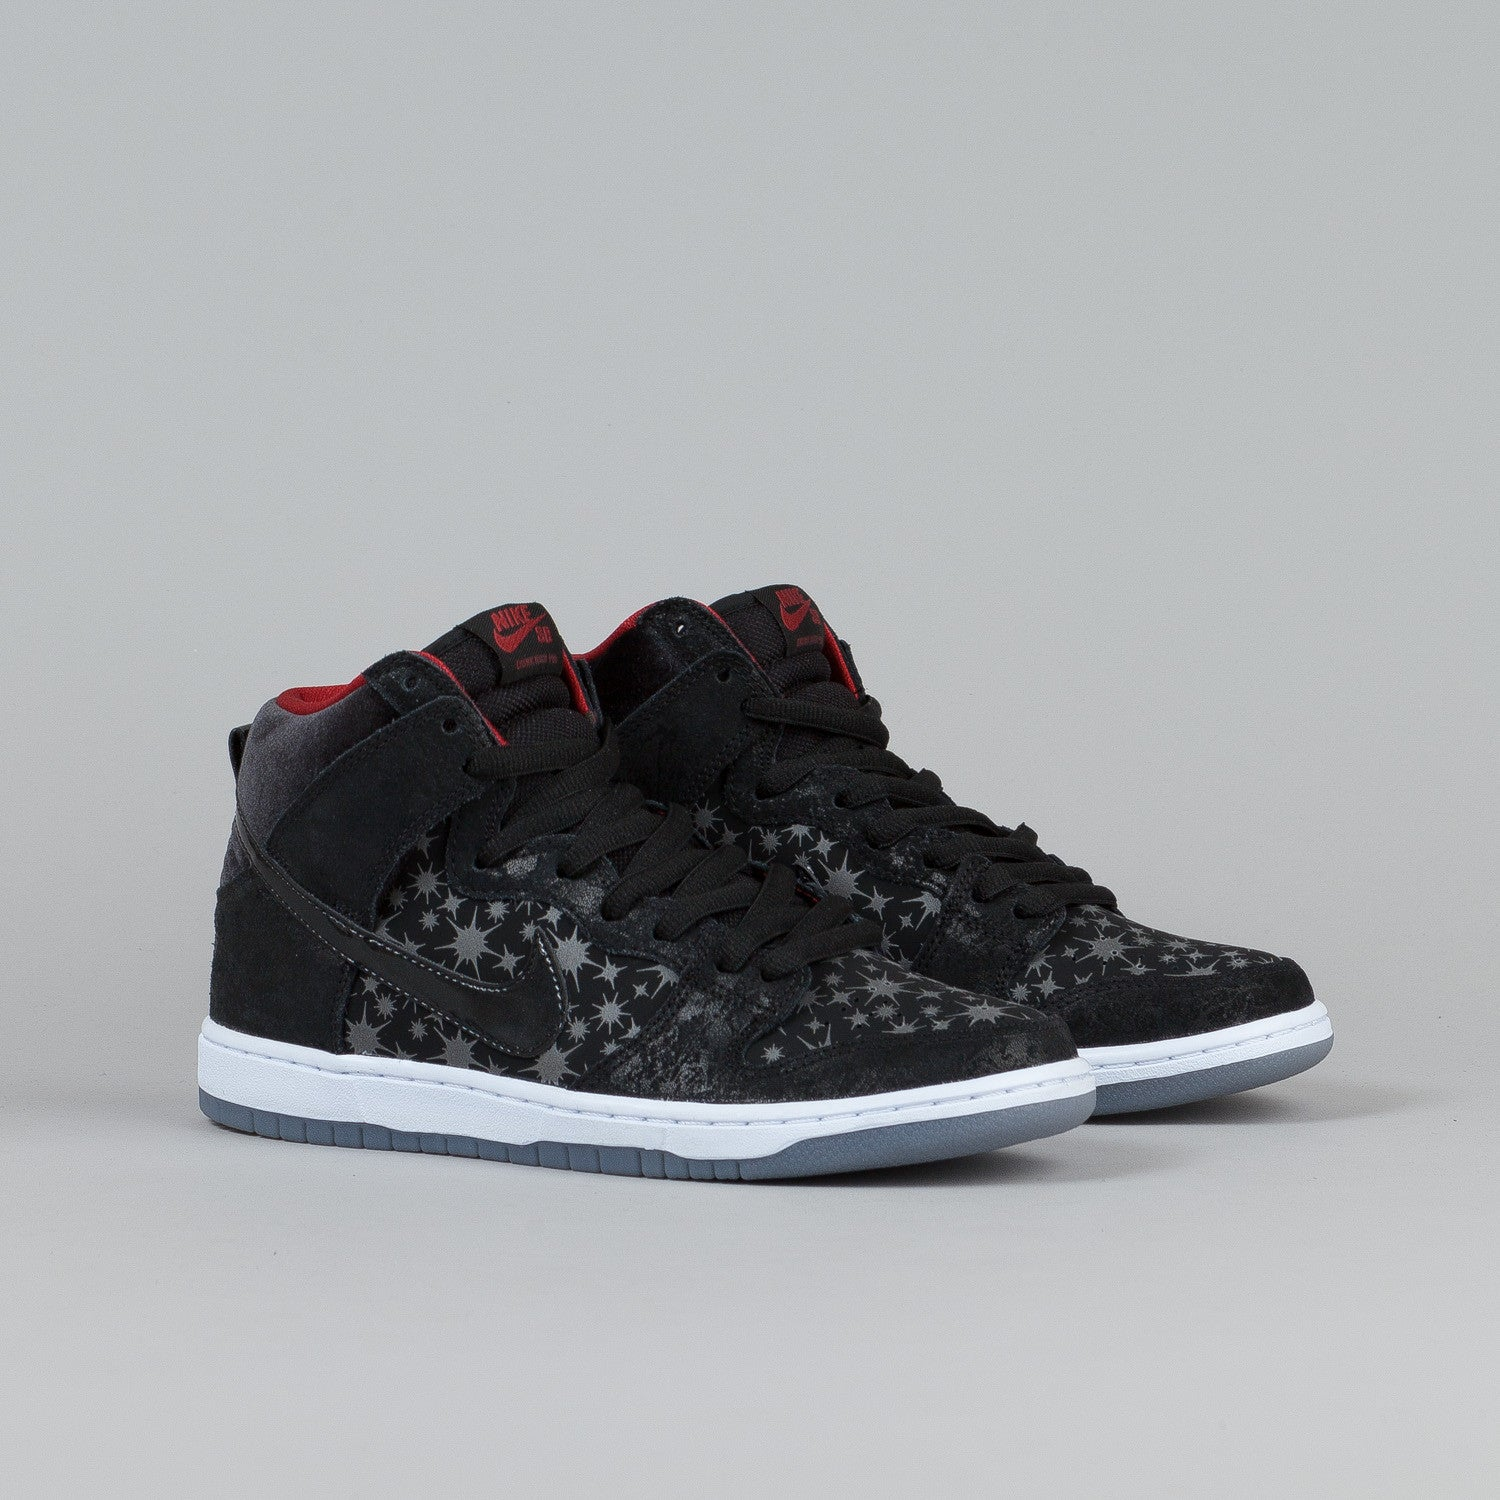 Nike SB Dunk High Premium Black / Black - Valiant Red